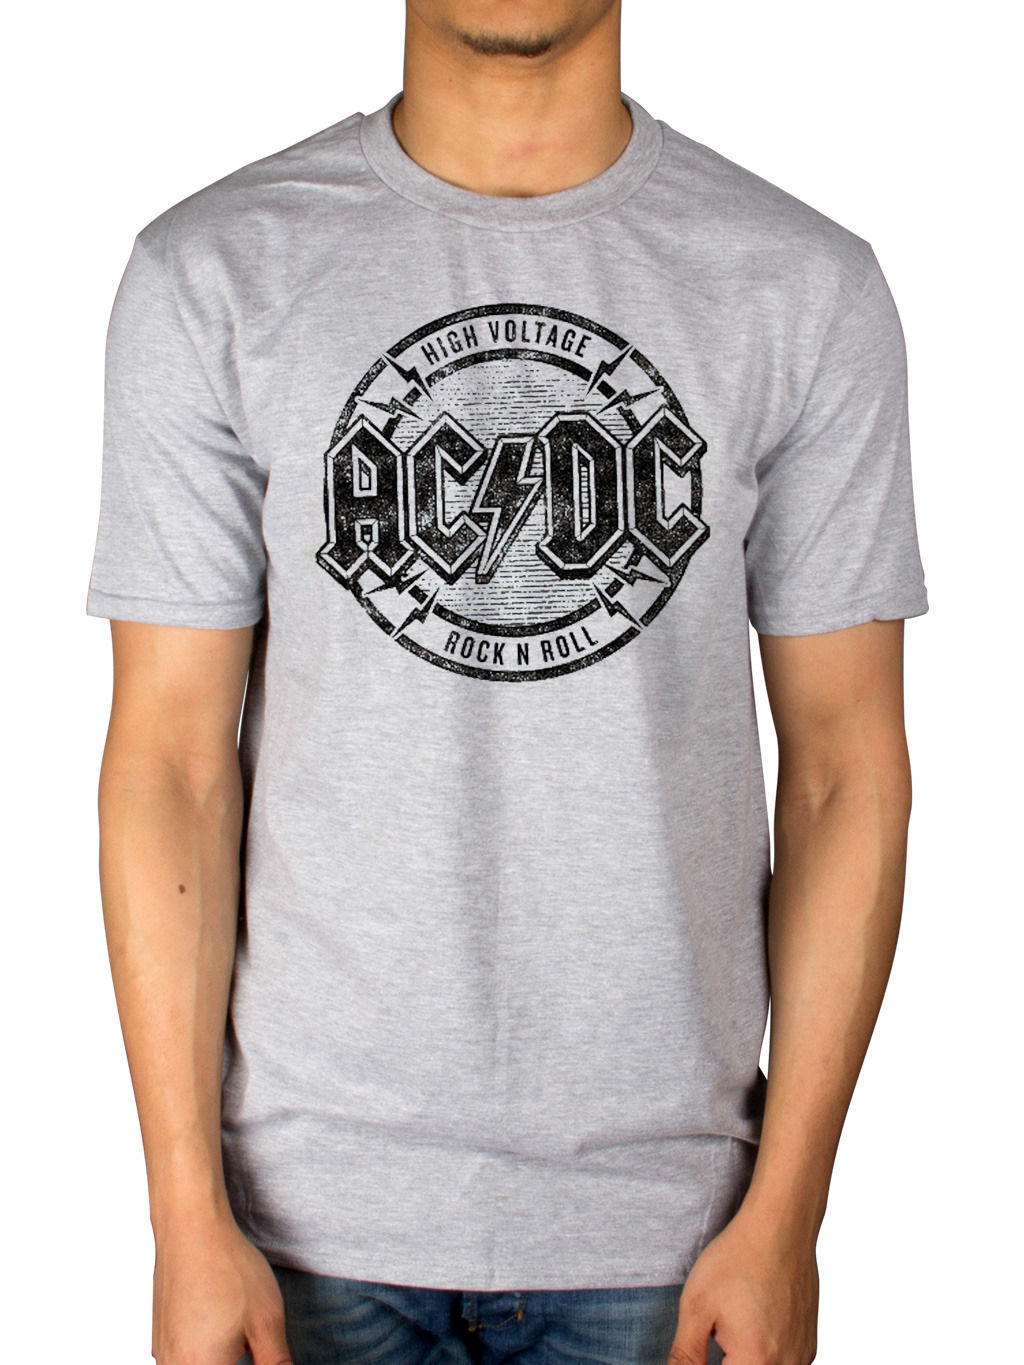 Official AC/DC Hv Rock N Roll T-Shirt Dirty Deeds Done Cheap Back In Black Album New 2018 Fashion Mens T-Shirts The New ...